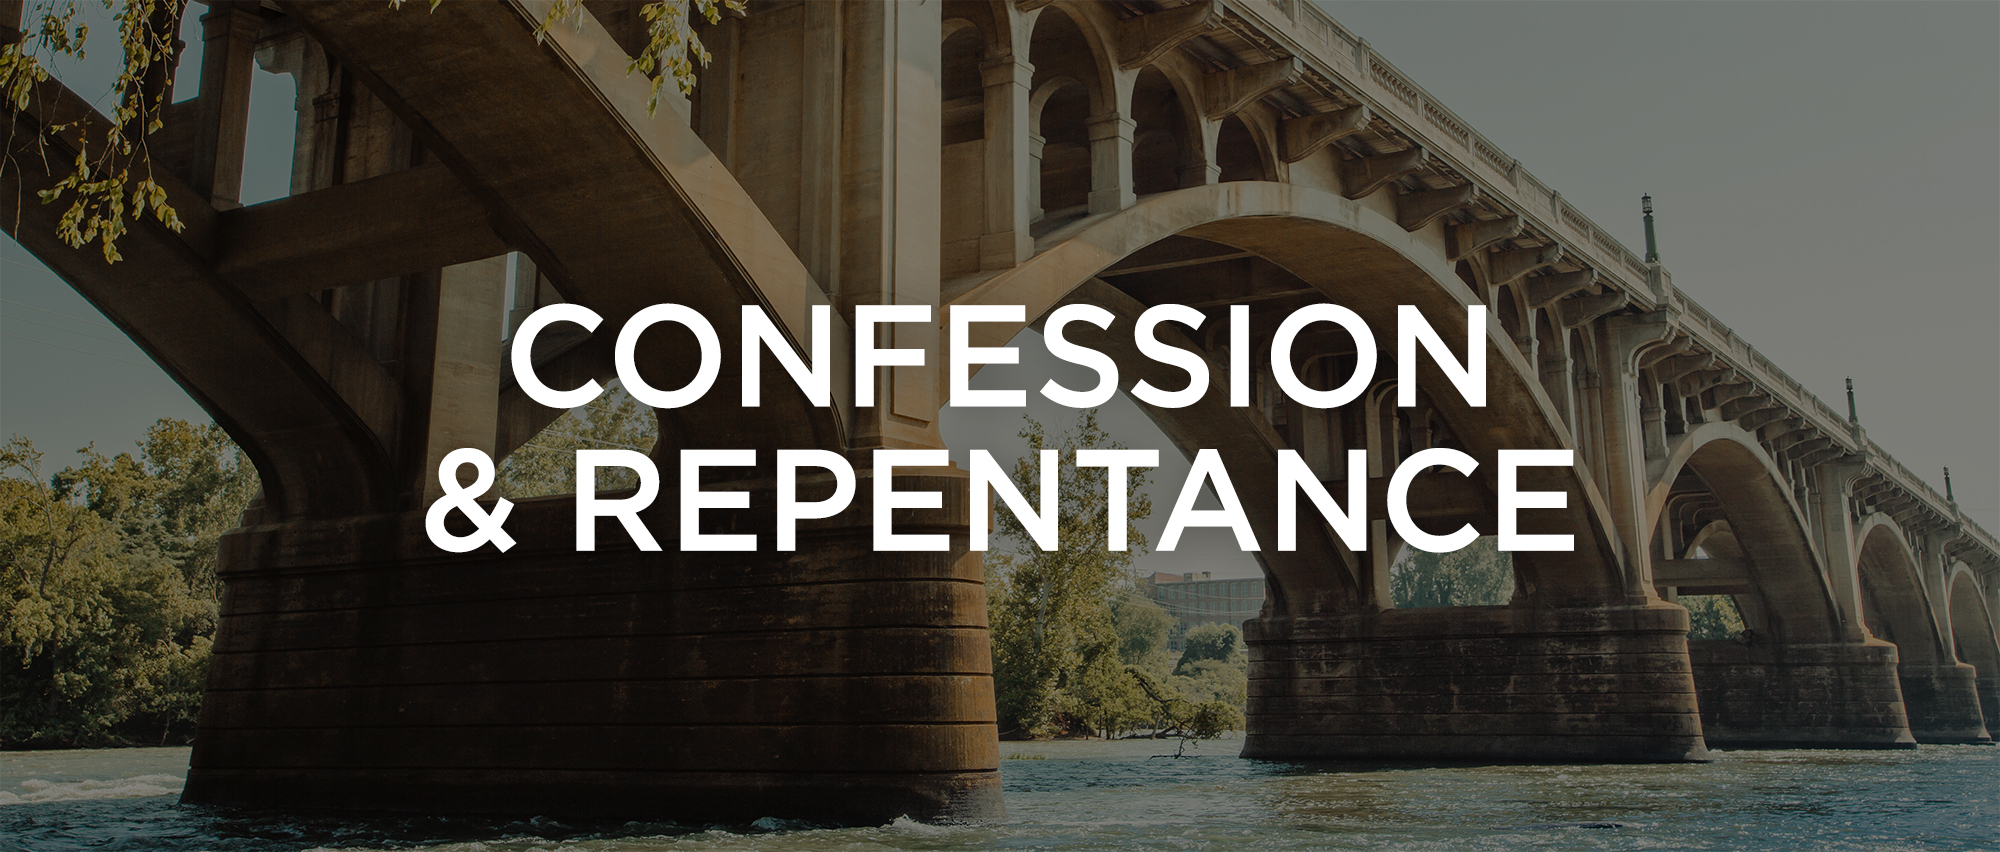 Confession and Repentance.jpg